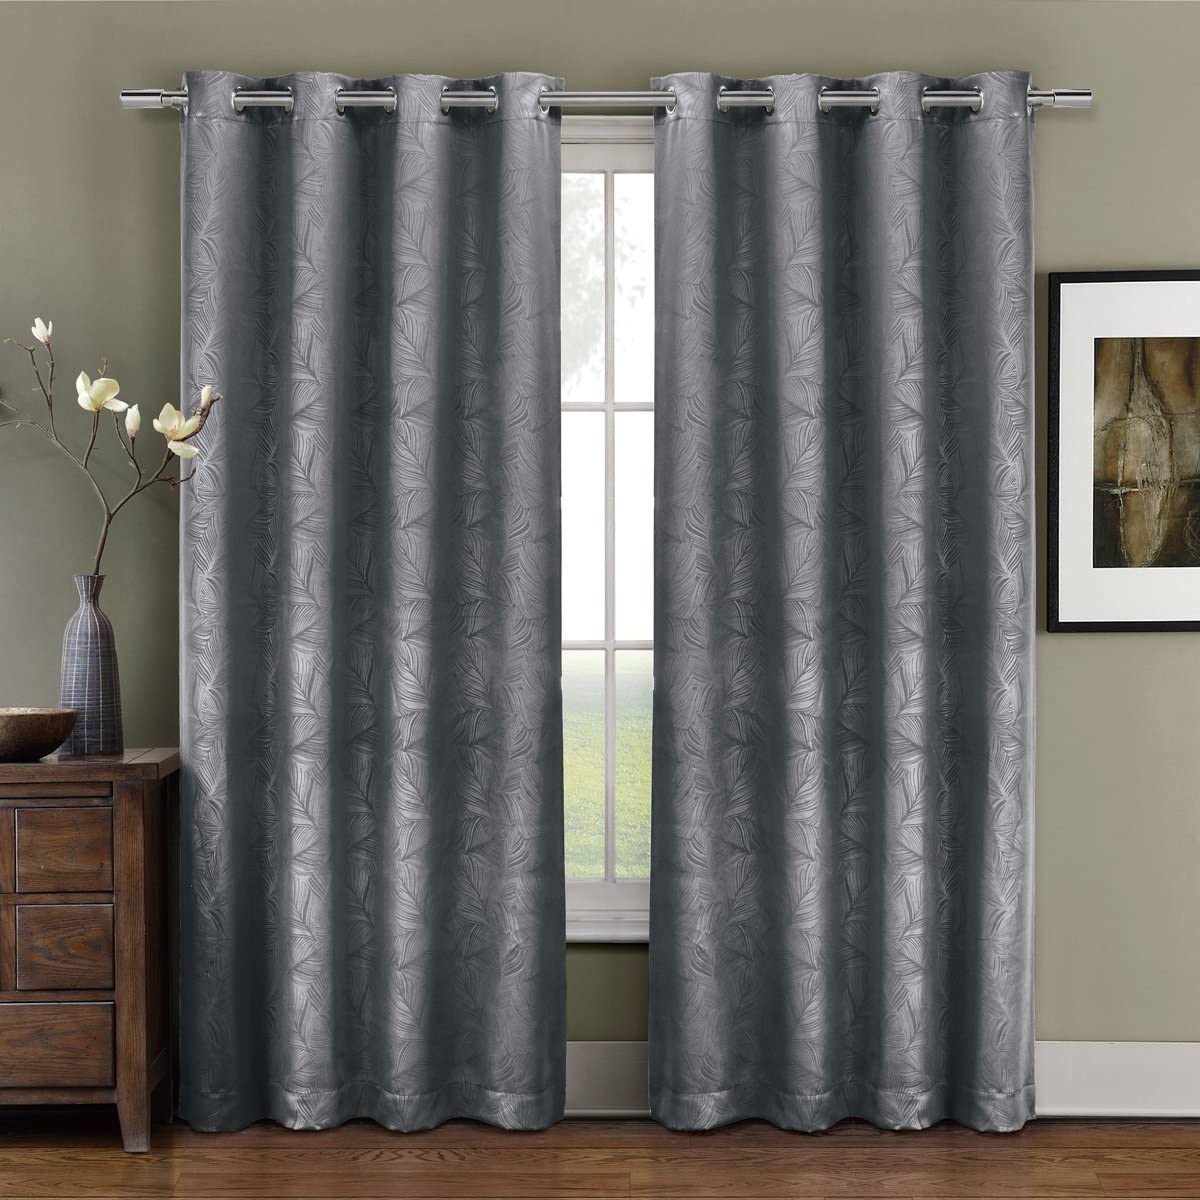 Deluxe Energy Efficient Room Darkening. Pair of Two Top Grommet Blackout Weave Embossed Curtain Panel, Triple-Pass Foam Back Layer, Elegant and Contemporary Prairie Blackout Panel, Grey, 108 Panel